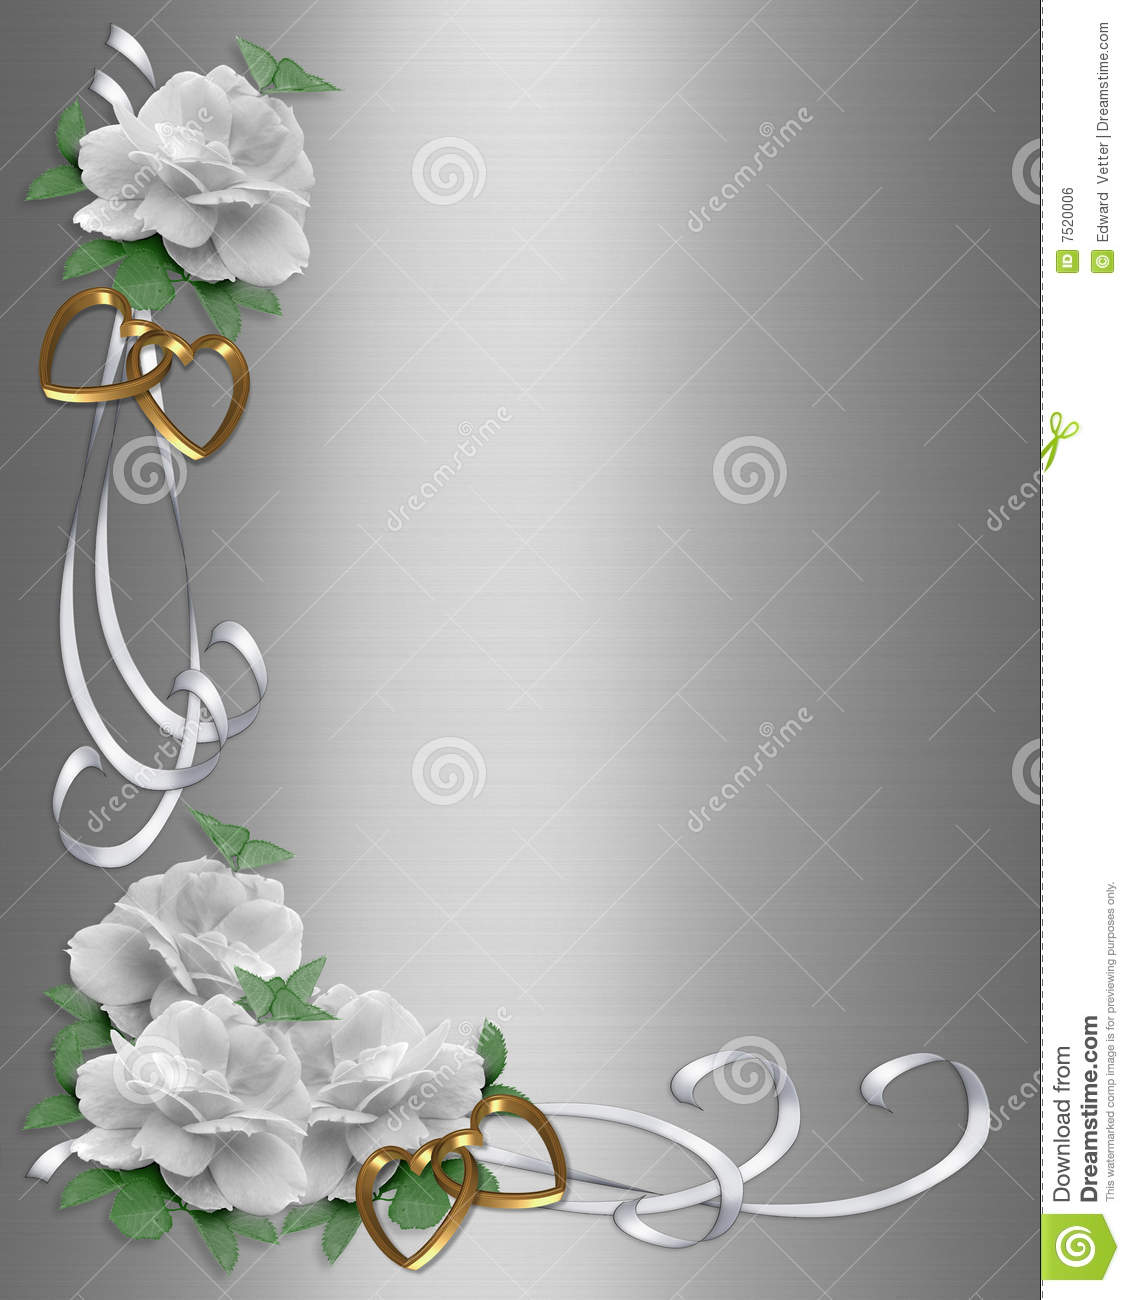 Wedding Invitation Border White Roses Stock Illustration - Illustration of greeting, flowers ...